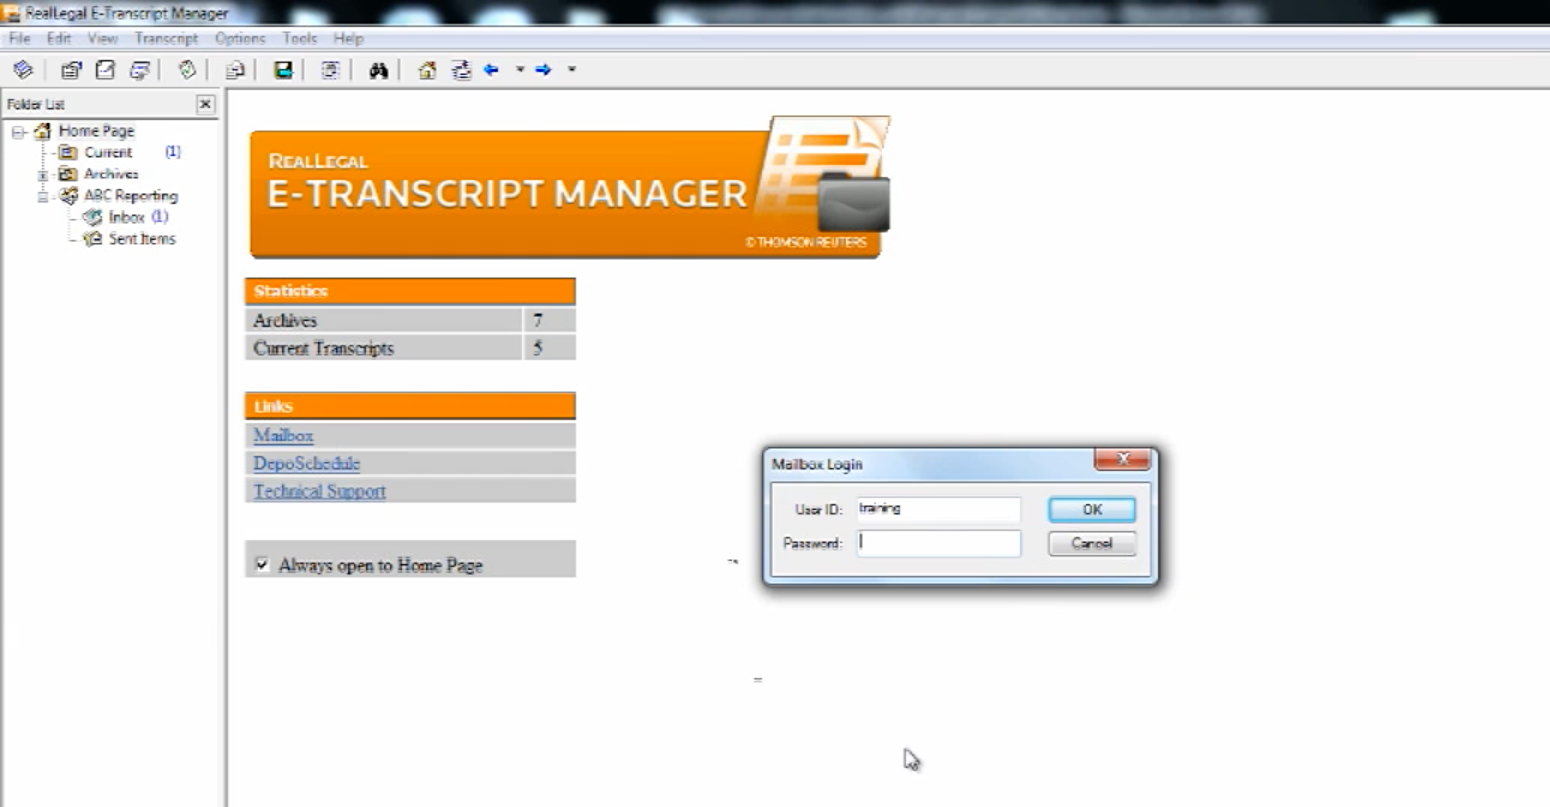 Logging into E-Transcript Manager and Workspace Overview